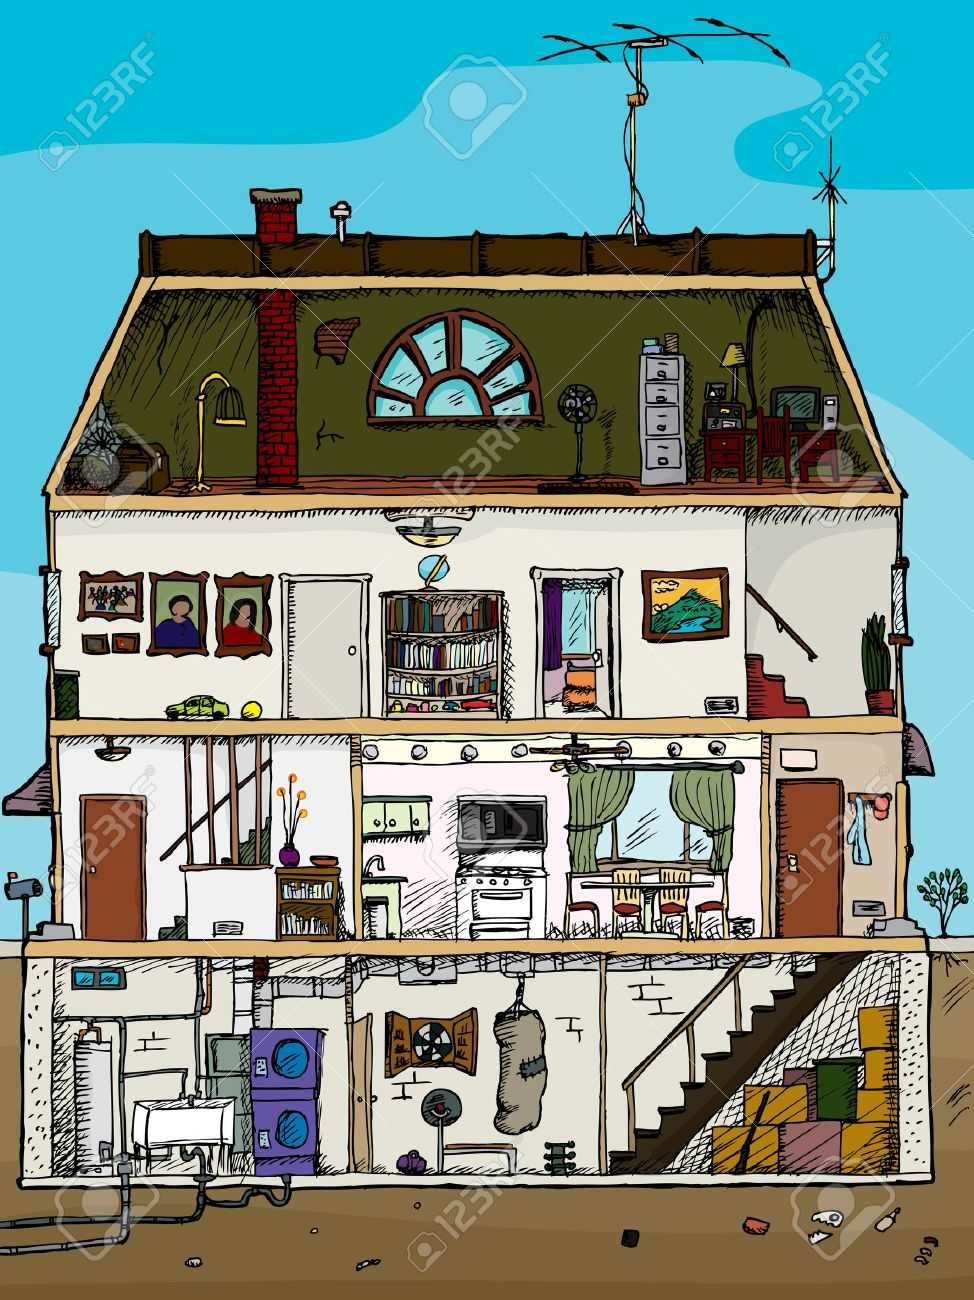 3 story old house cartoon cross section with basement royalty free